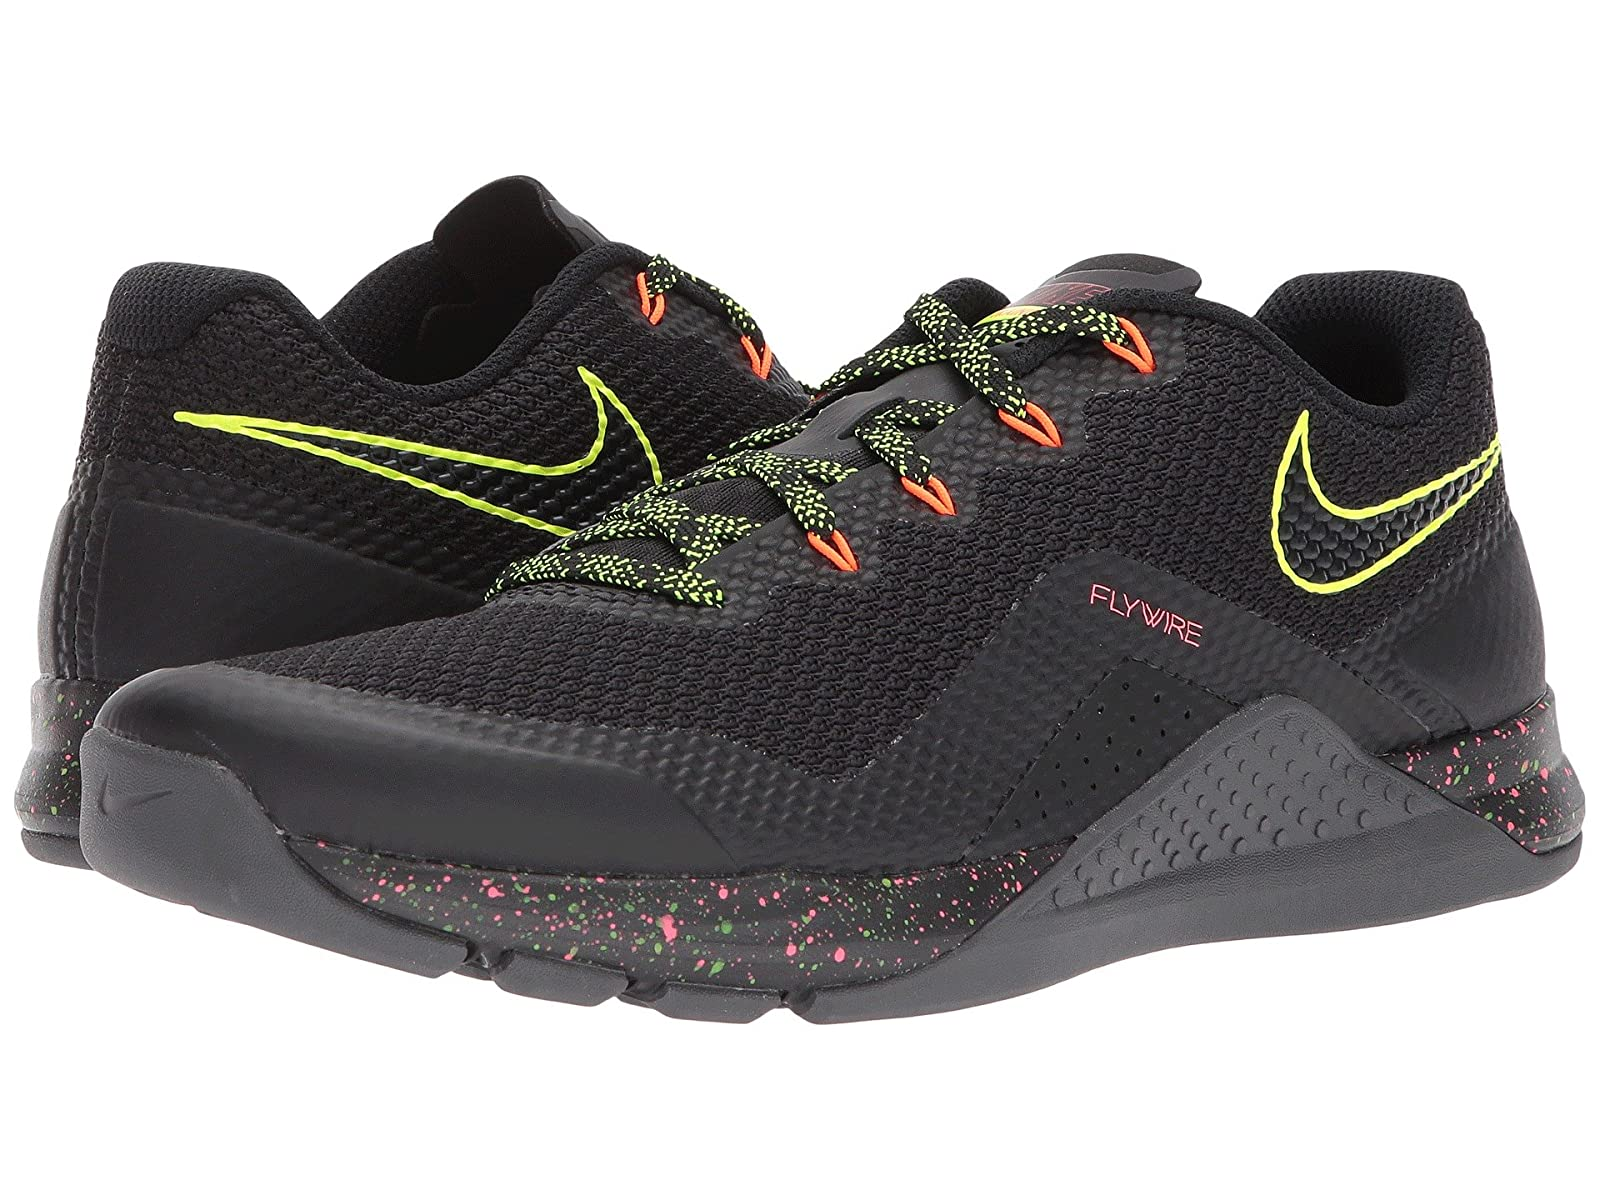 Nike Repper DSXCheap and distinctive eye-catching shoes